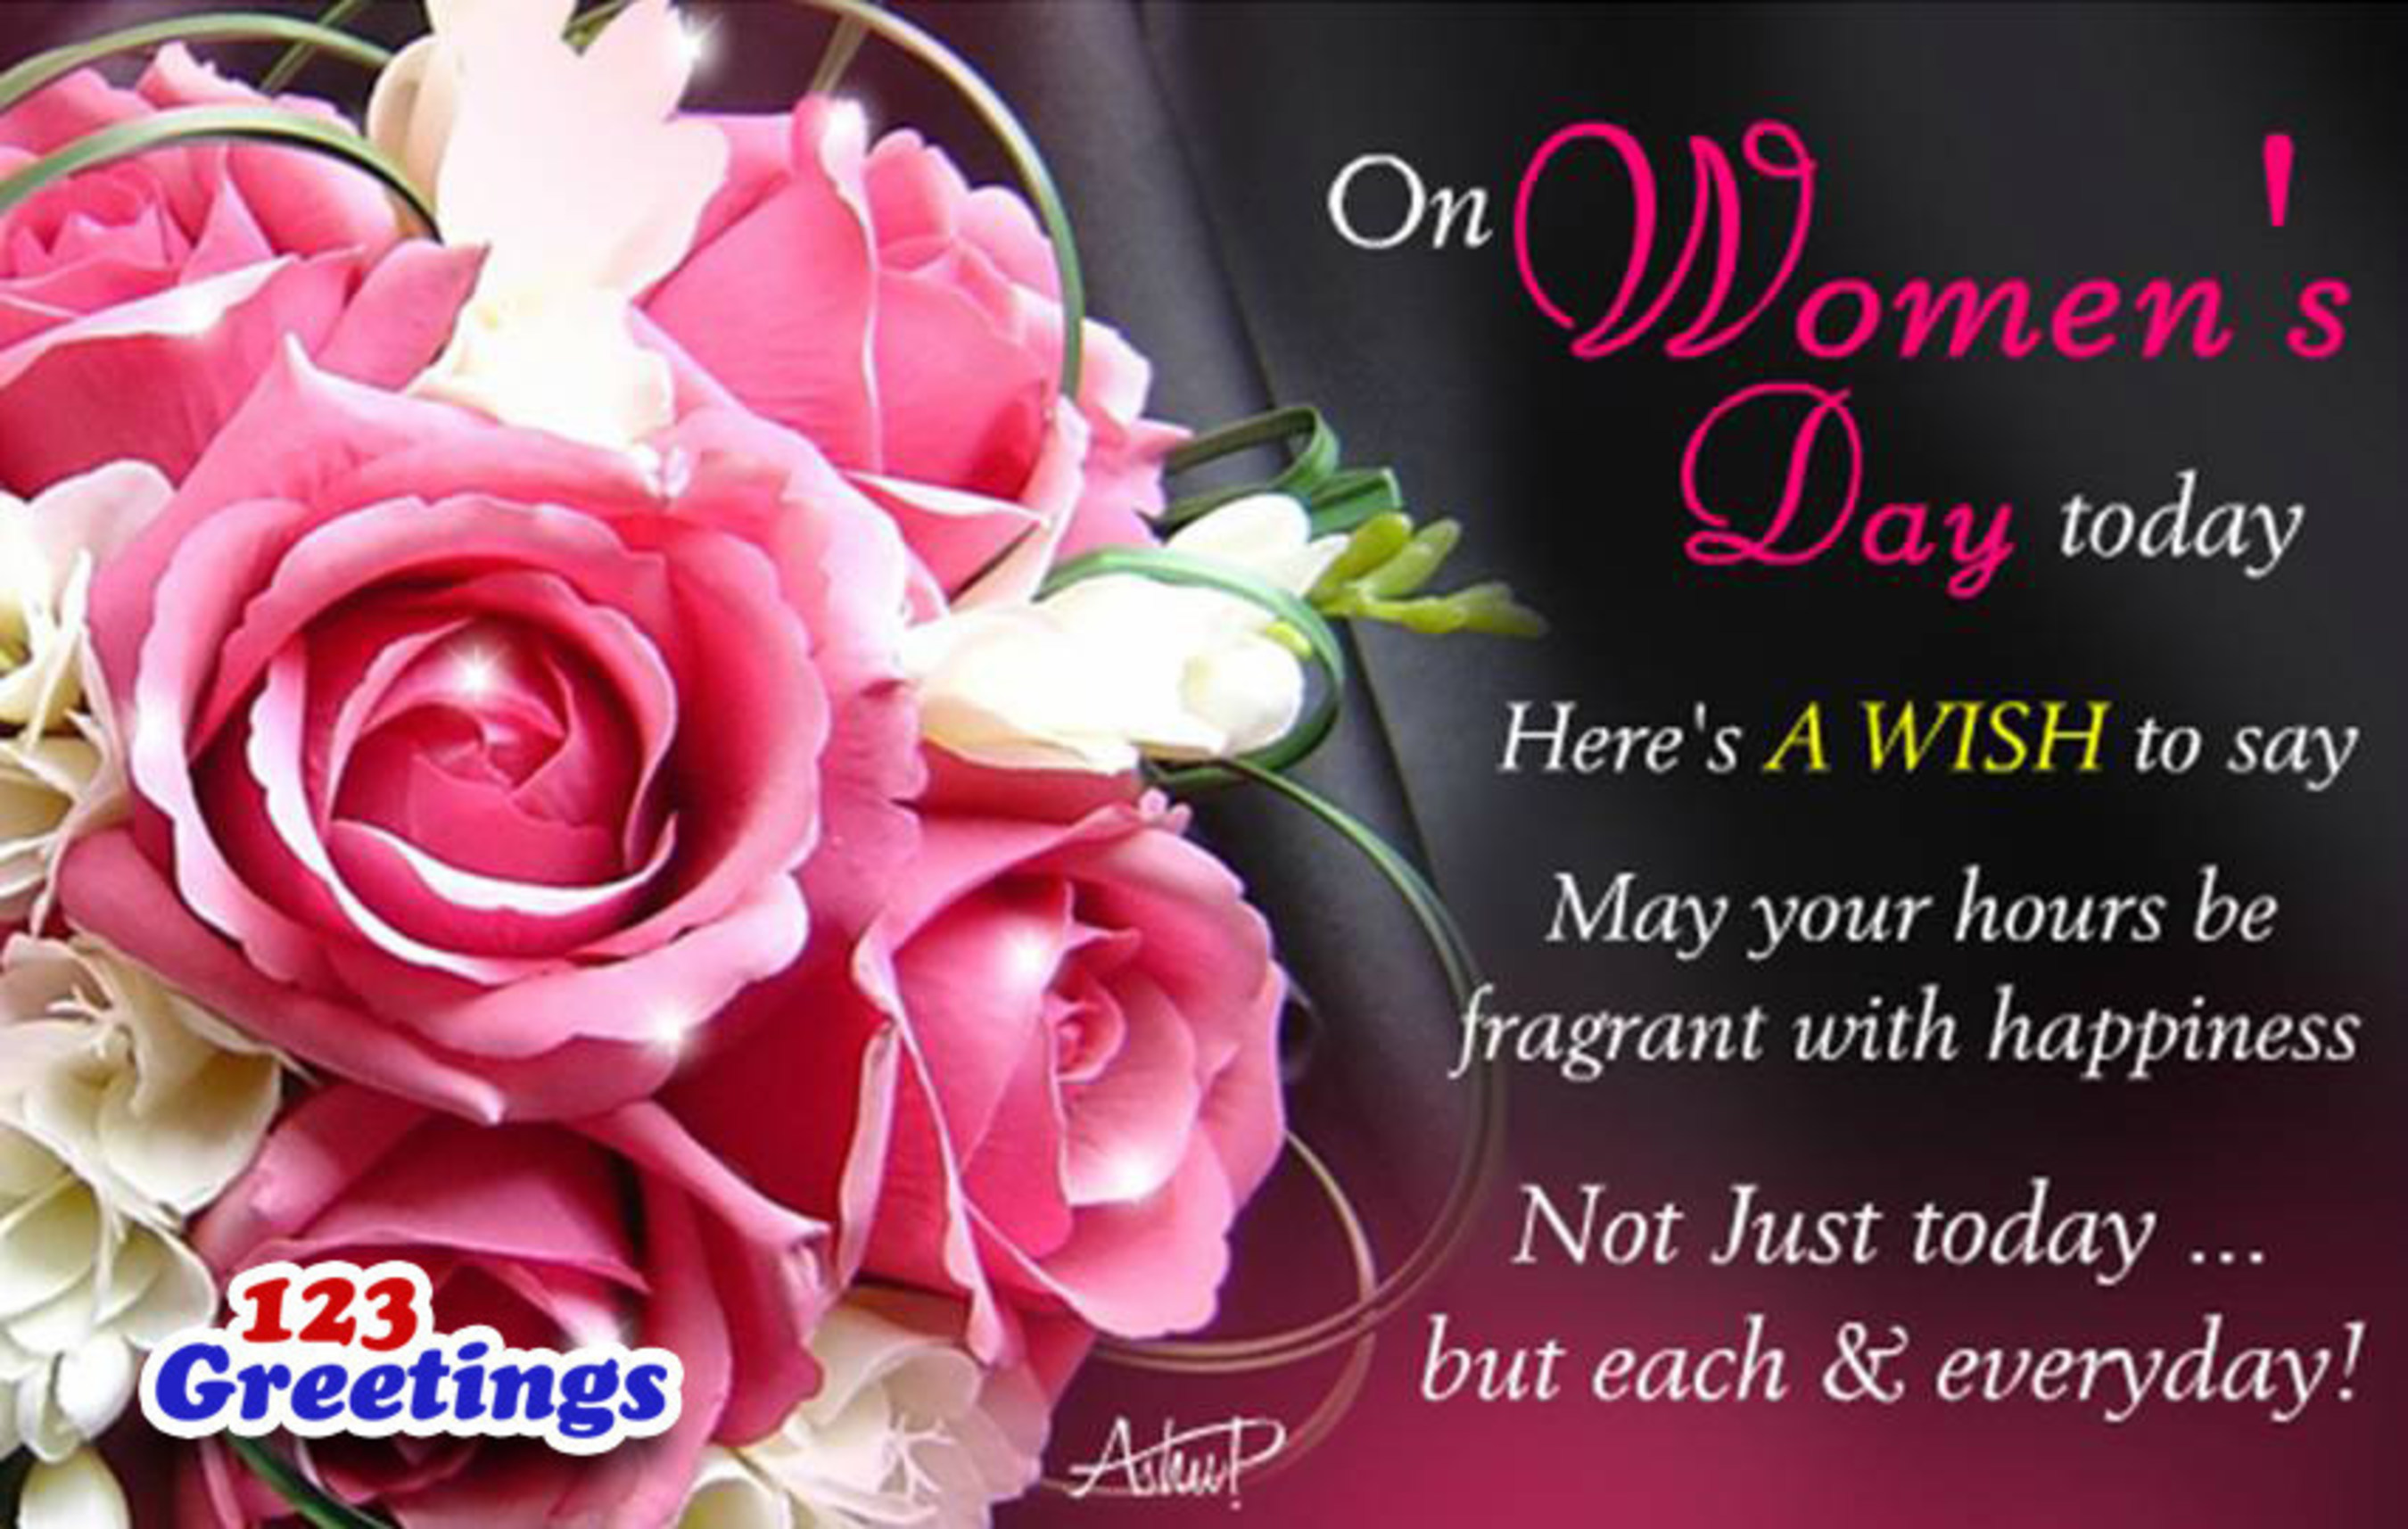 Over 400 International Women's Day Ecards To Delight The Tech Savvy, From 123Greetings.com